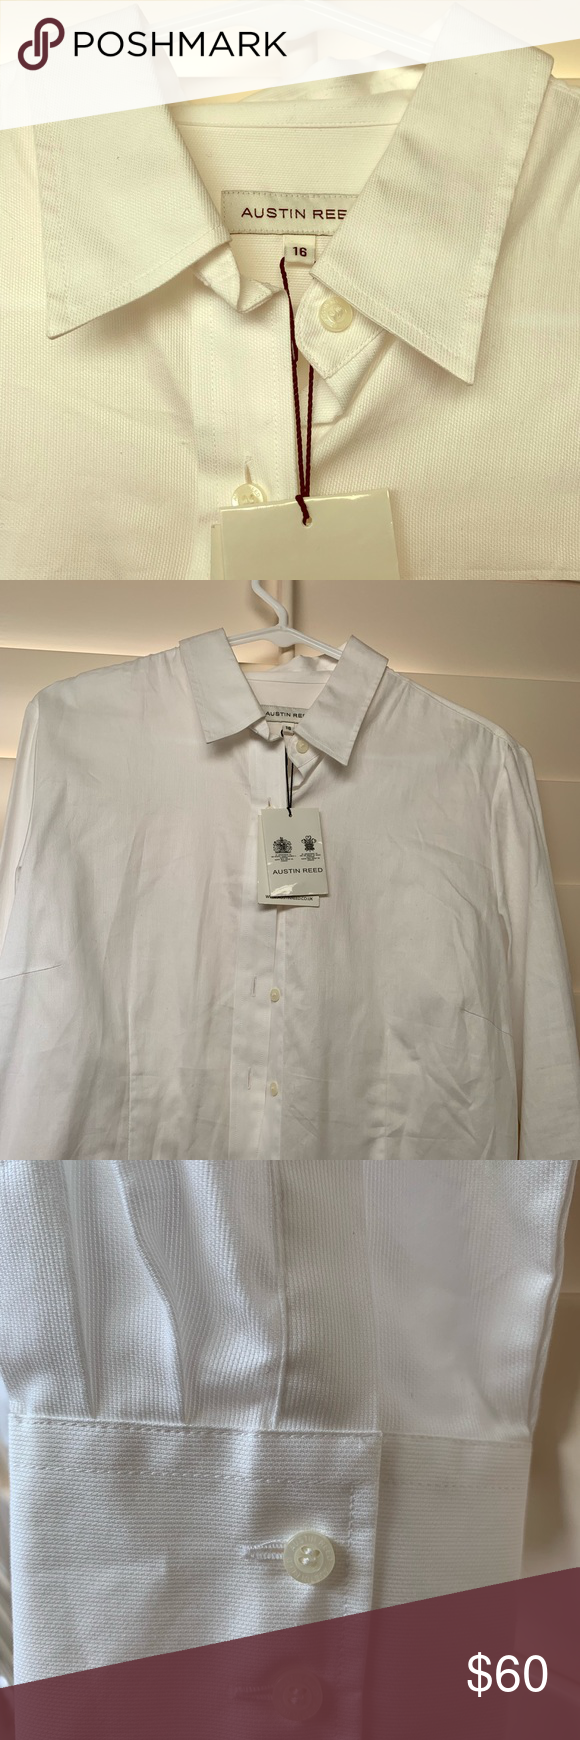 Austin Reed Quality Fitted Classic Oxford Shirt Uk Size 16 Translates To Us 12 14 Never Worn Purchased In Dubai Highes Oxford Shirt Clothes Design Shirts